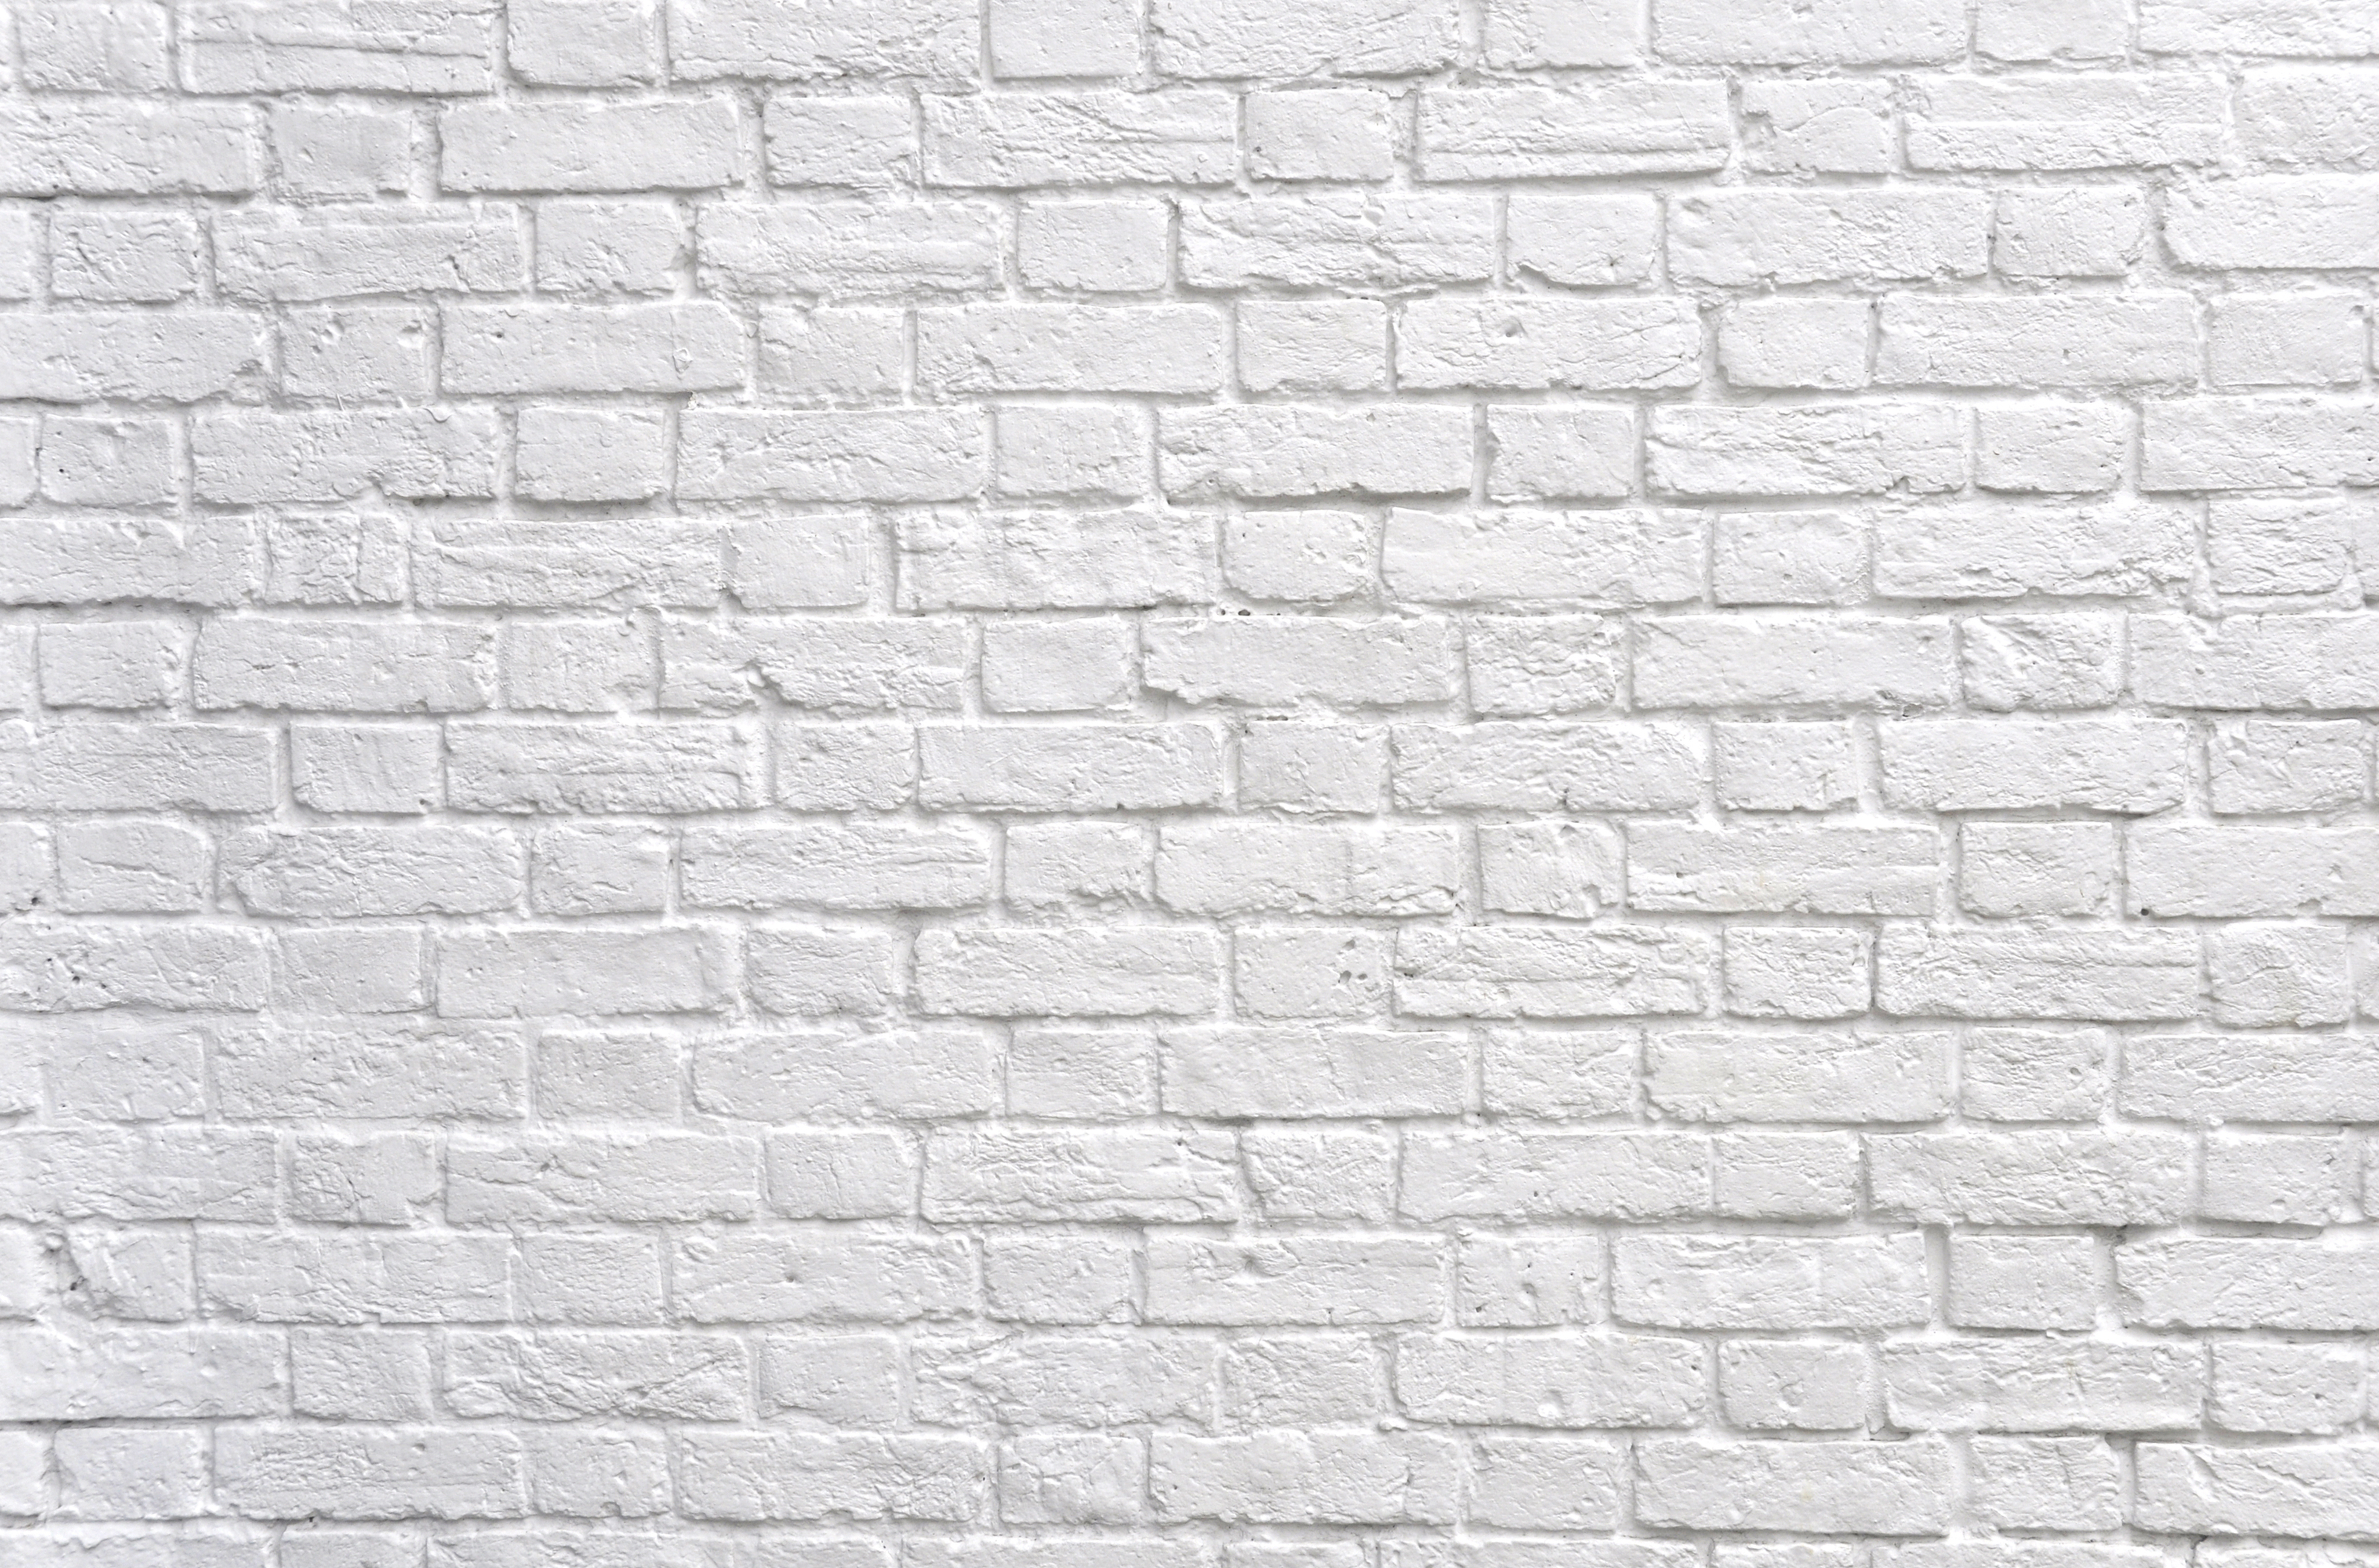 Design White Brick black and white brick wall background image published june 13 2016 at 3200 2109